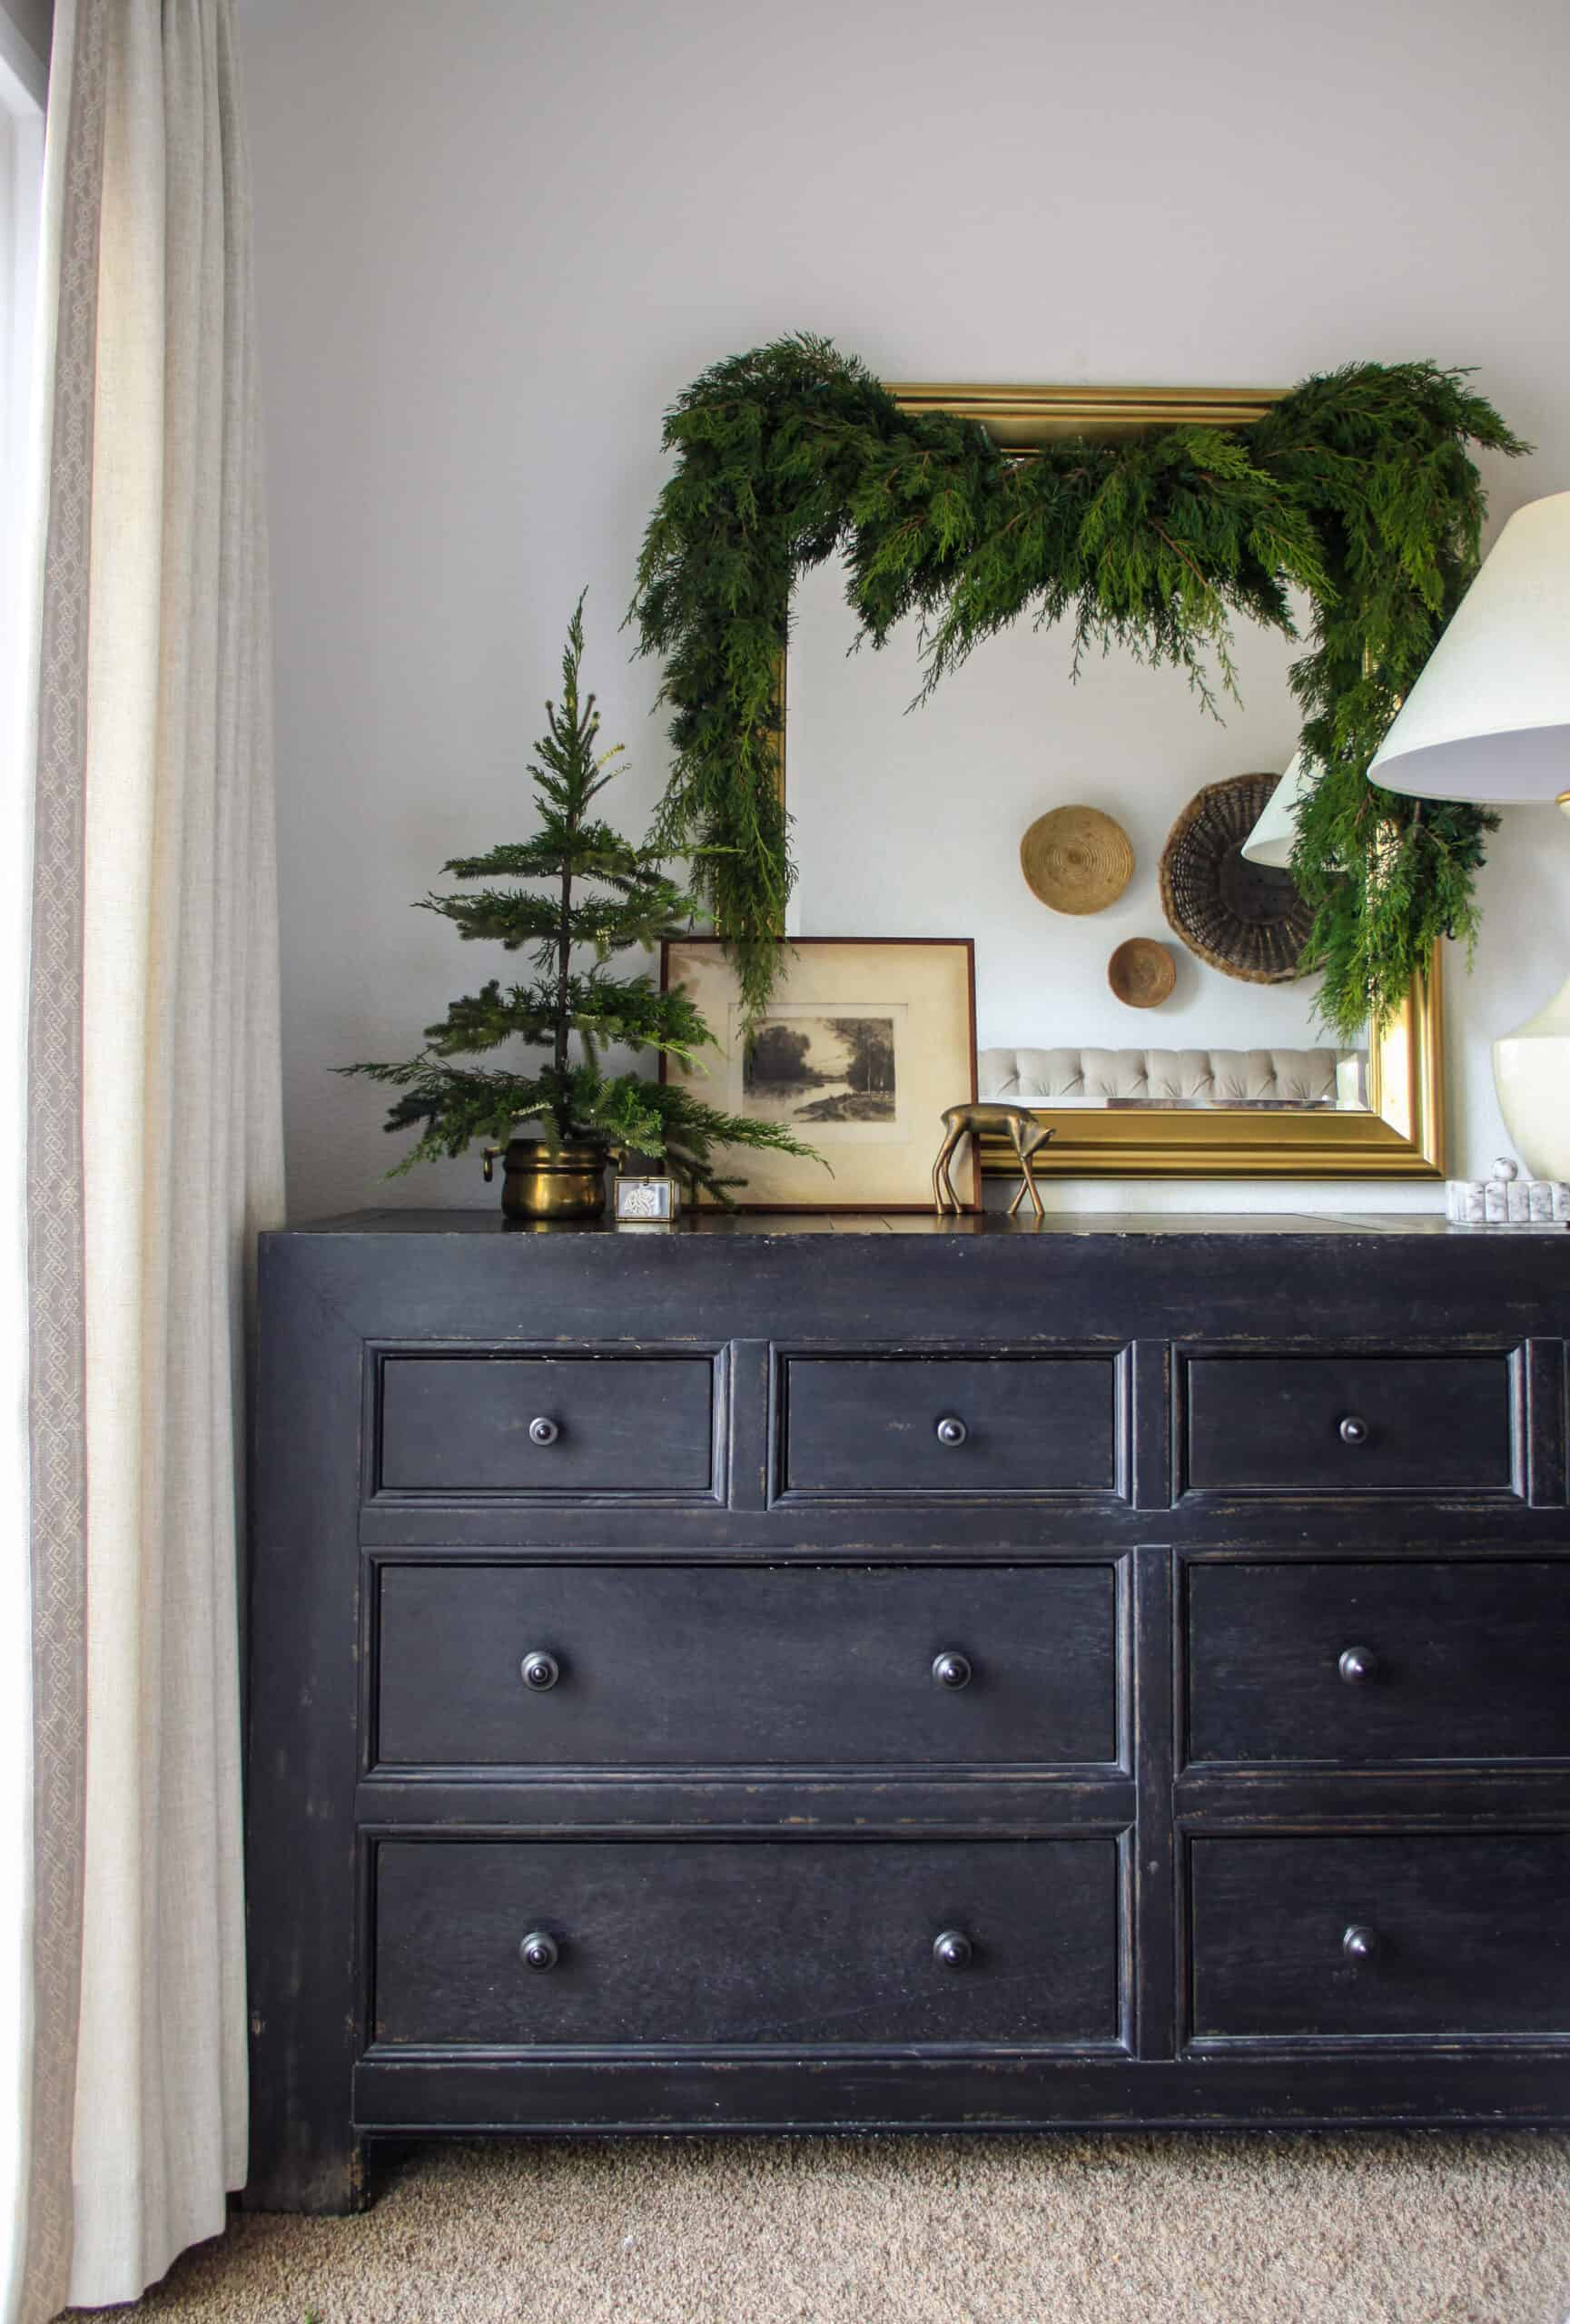 Black dresser with gold mirror and garland above